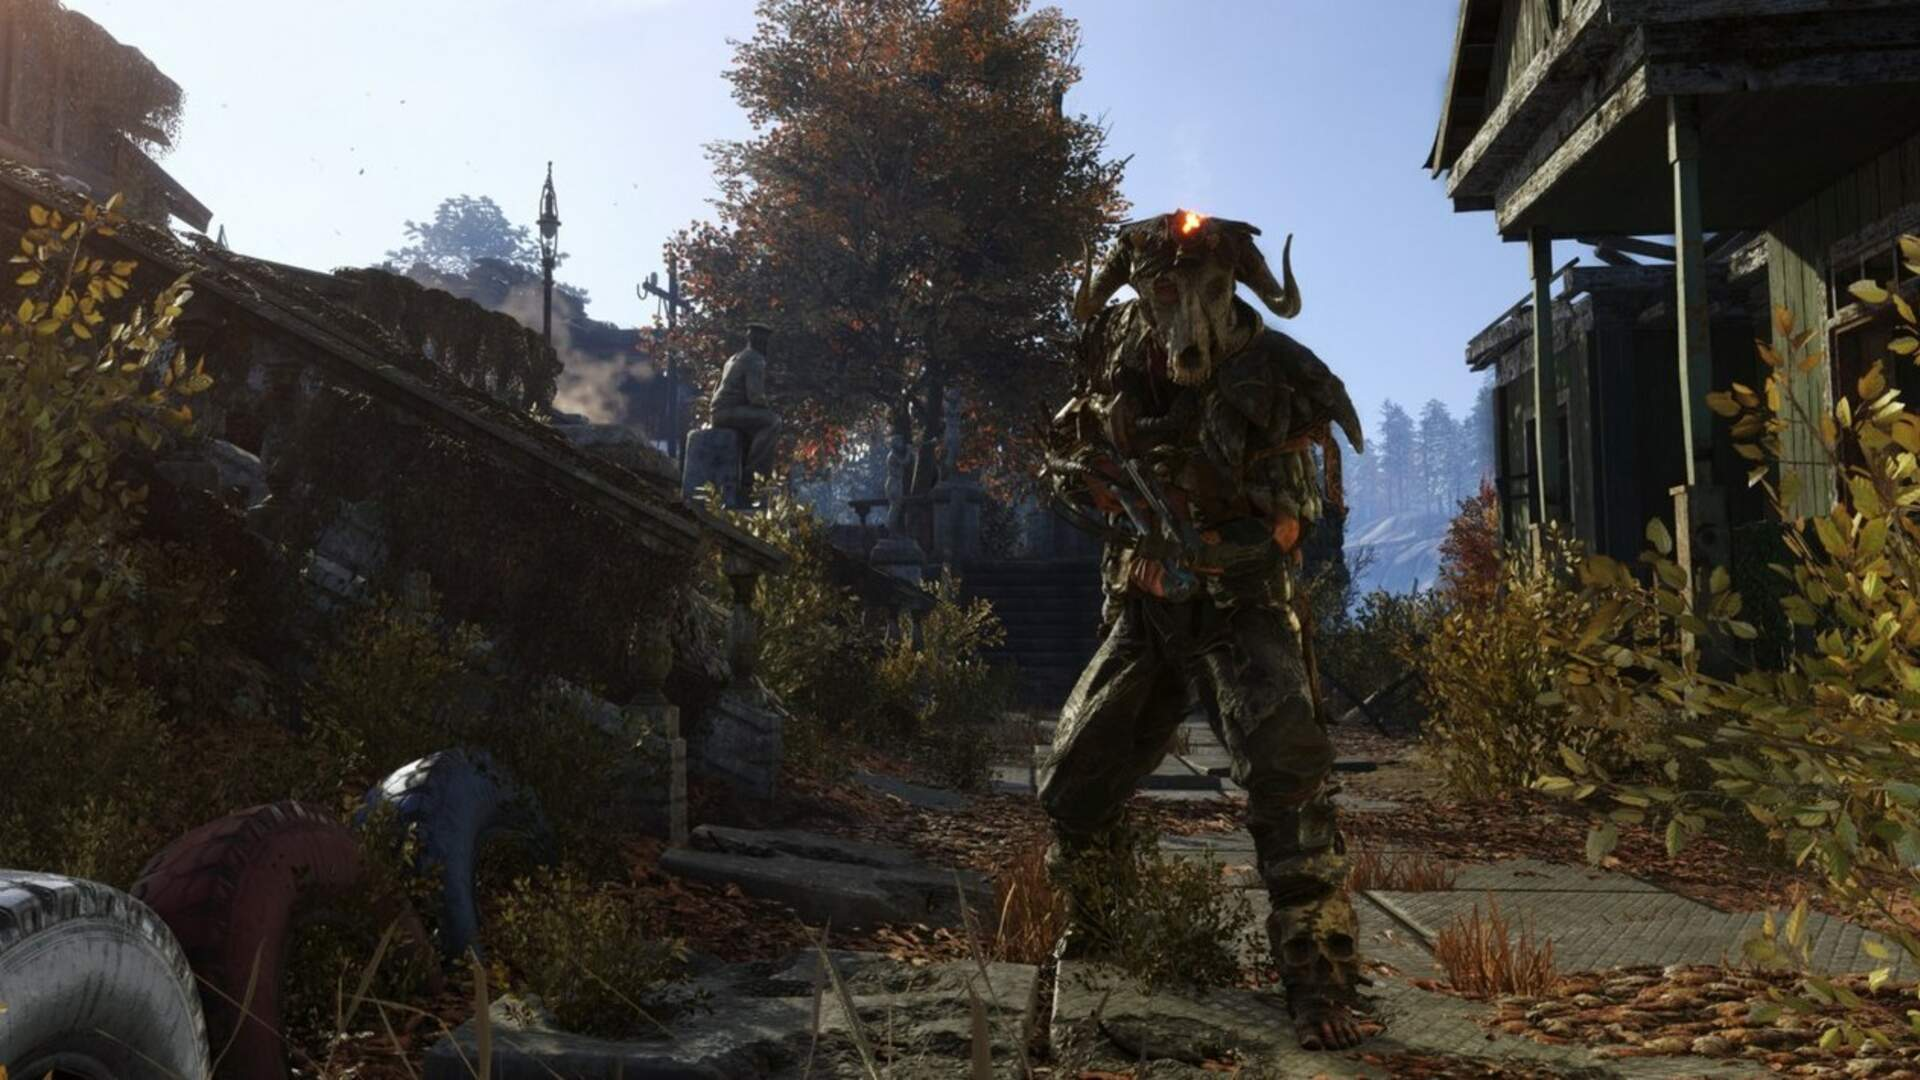 Metro Exodus Takes to the Surface, But It's Not Where the Game is Strongest